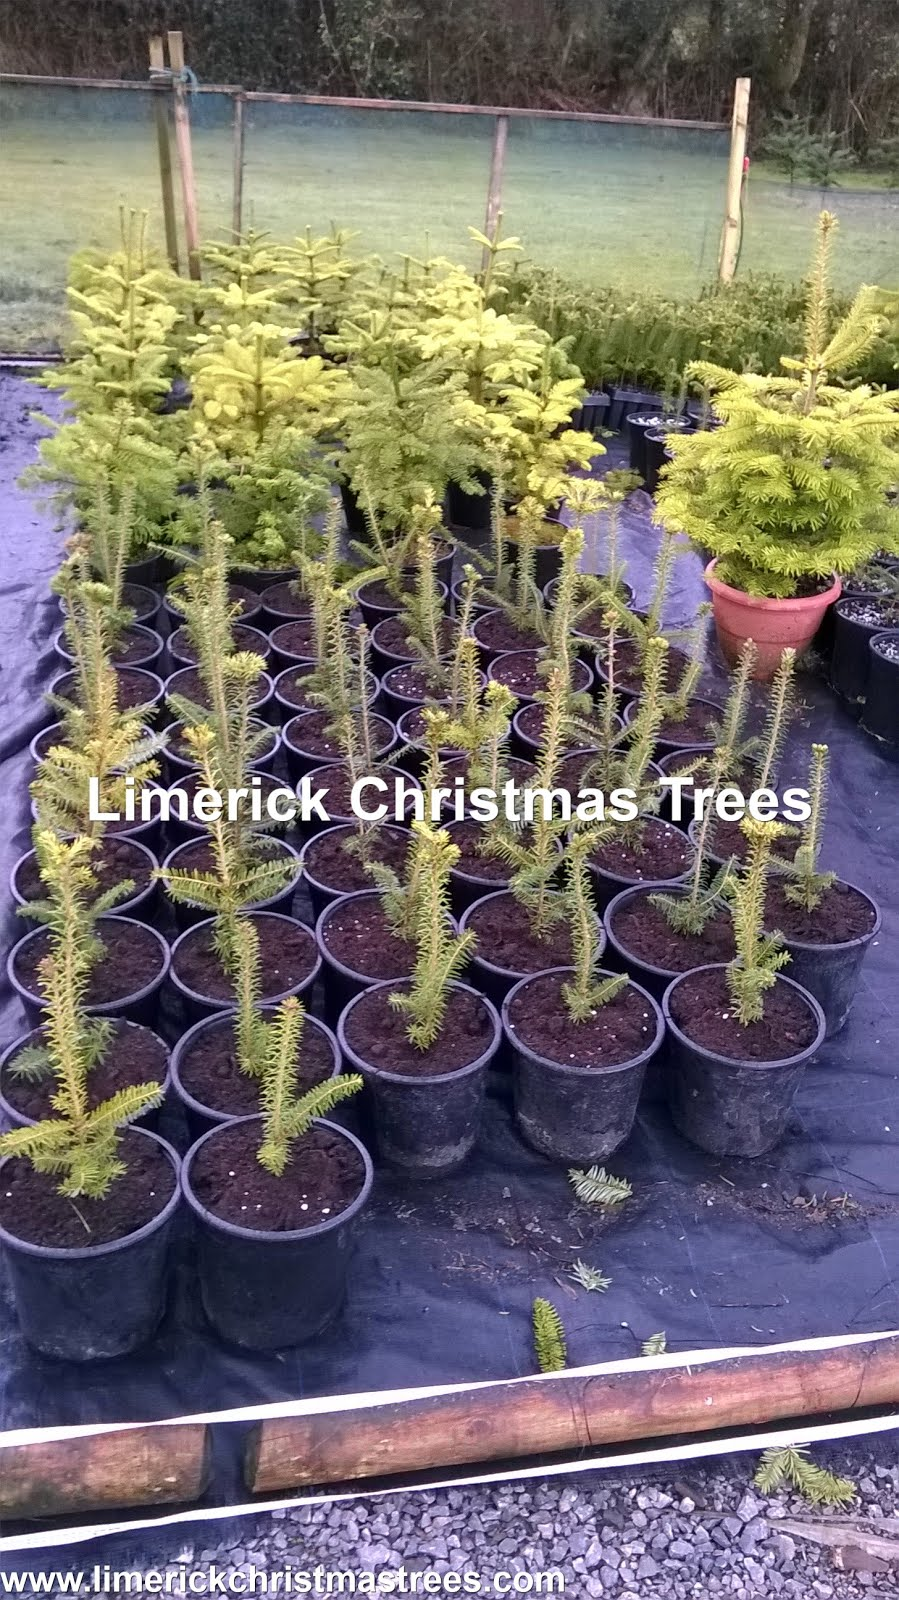 Limerick Christmas Tree Centre Pot Growing Christmas Trees